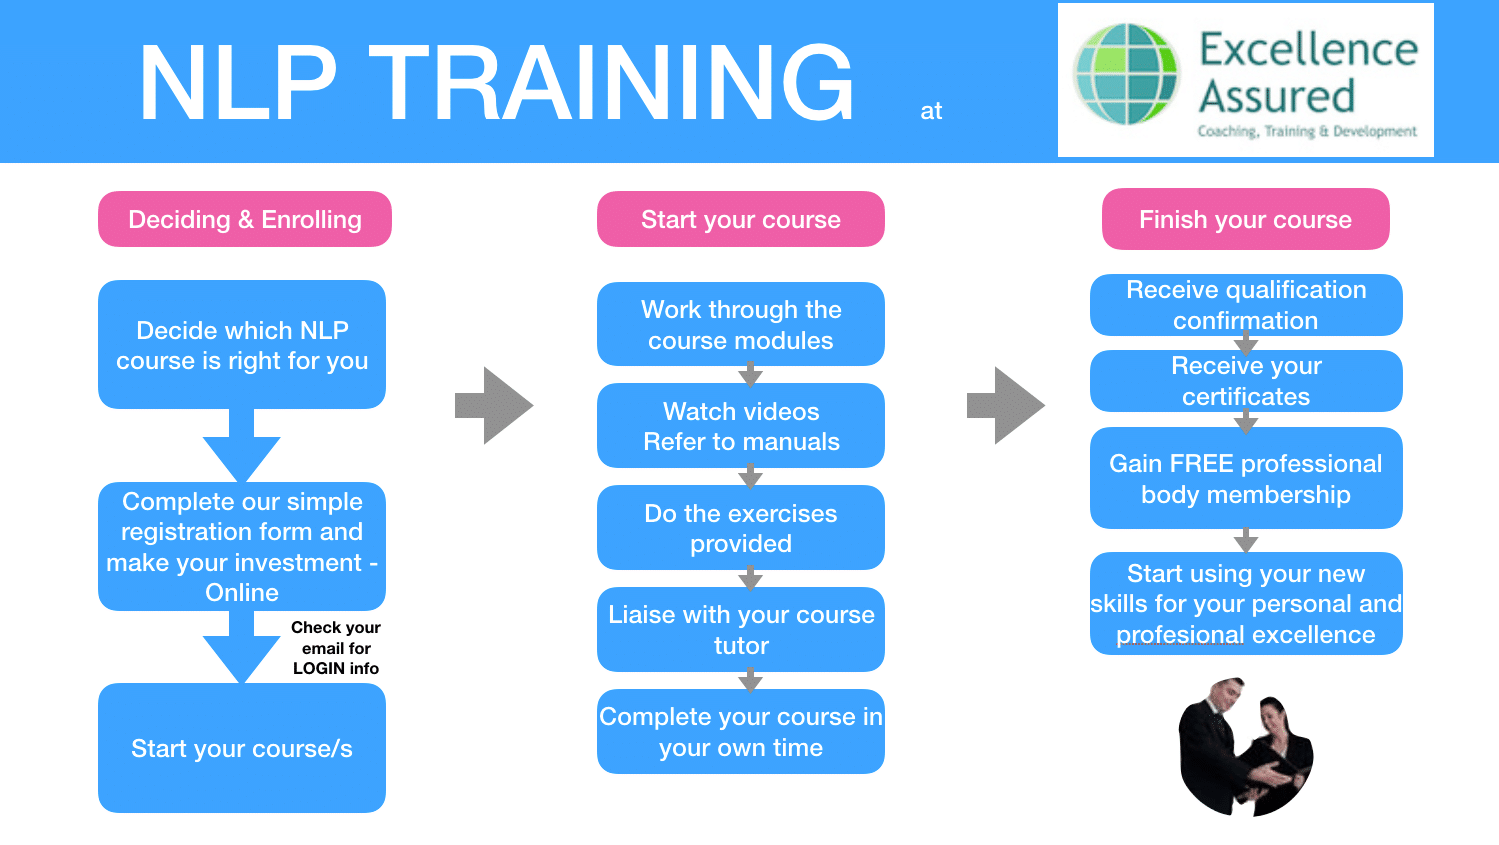 Making your NLP e-learning investment